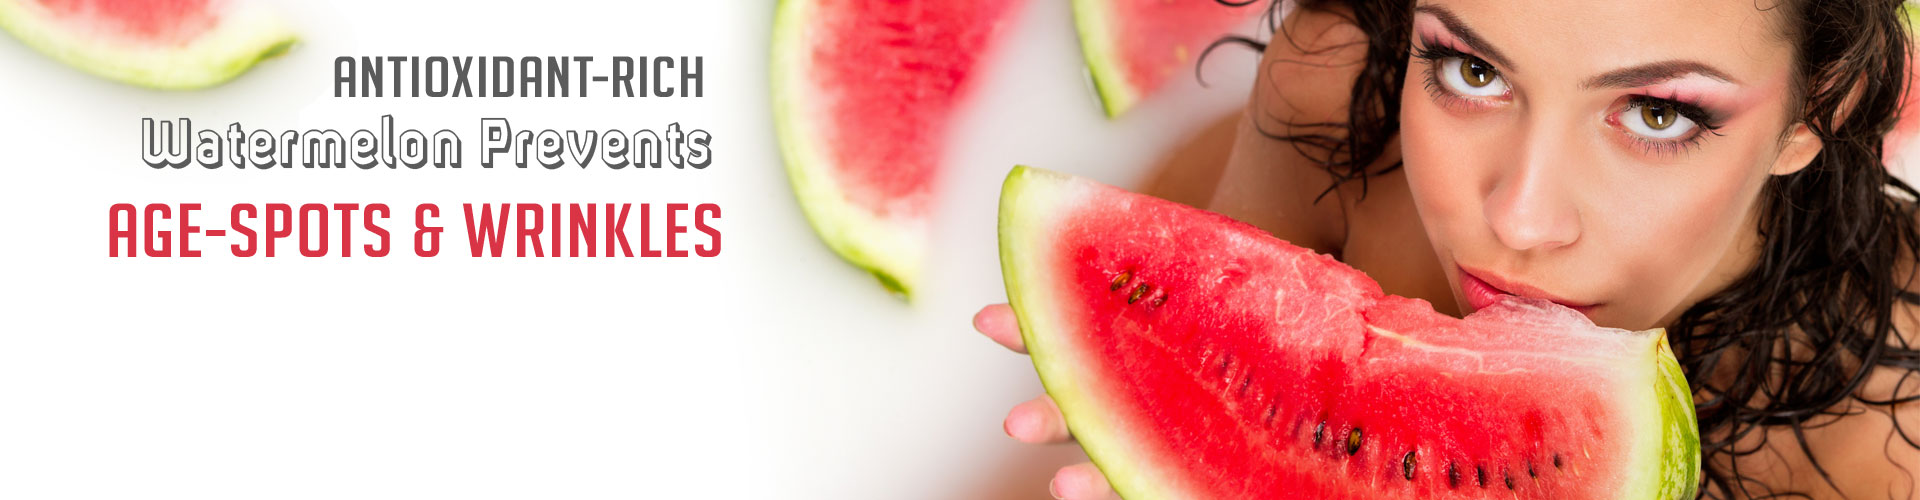 Antioxidant-Rich Watermelon Prevents Age-Spots and Wrinkles